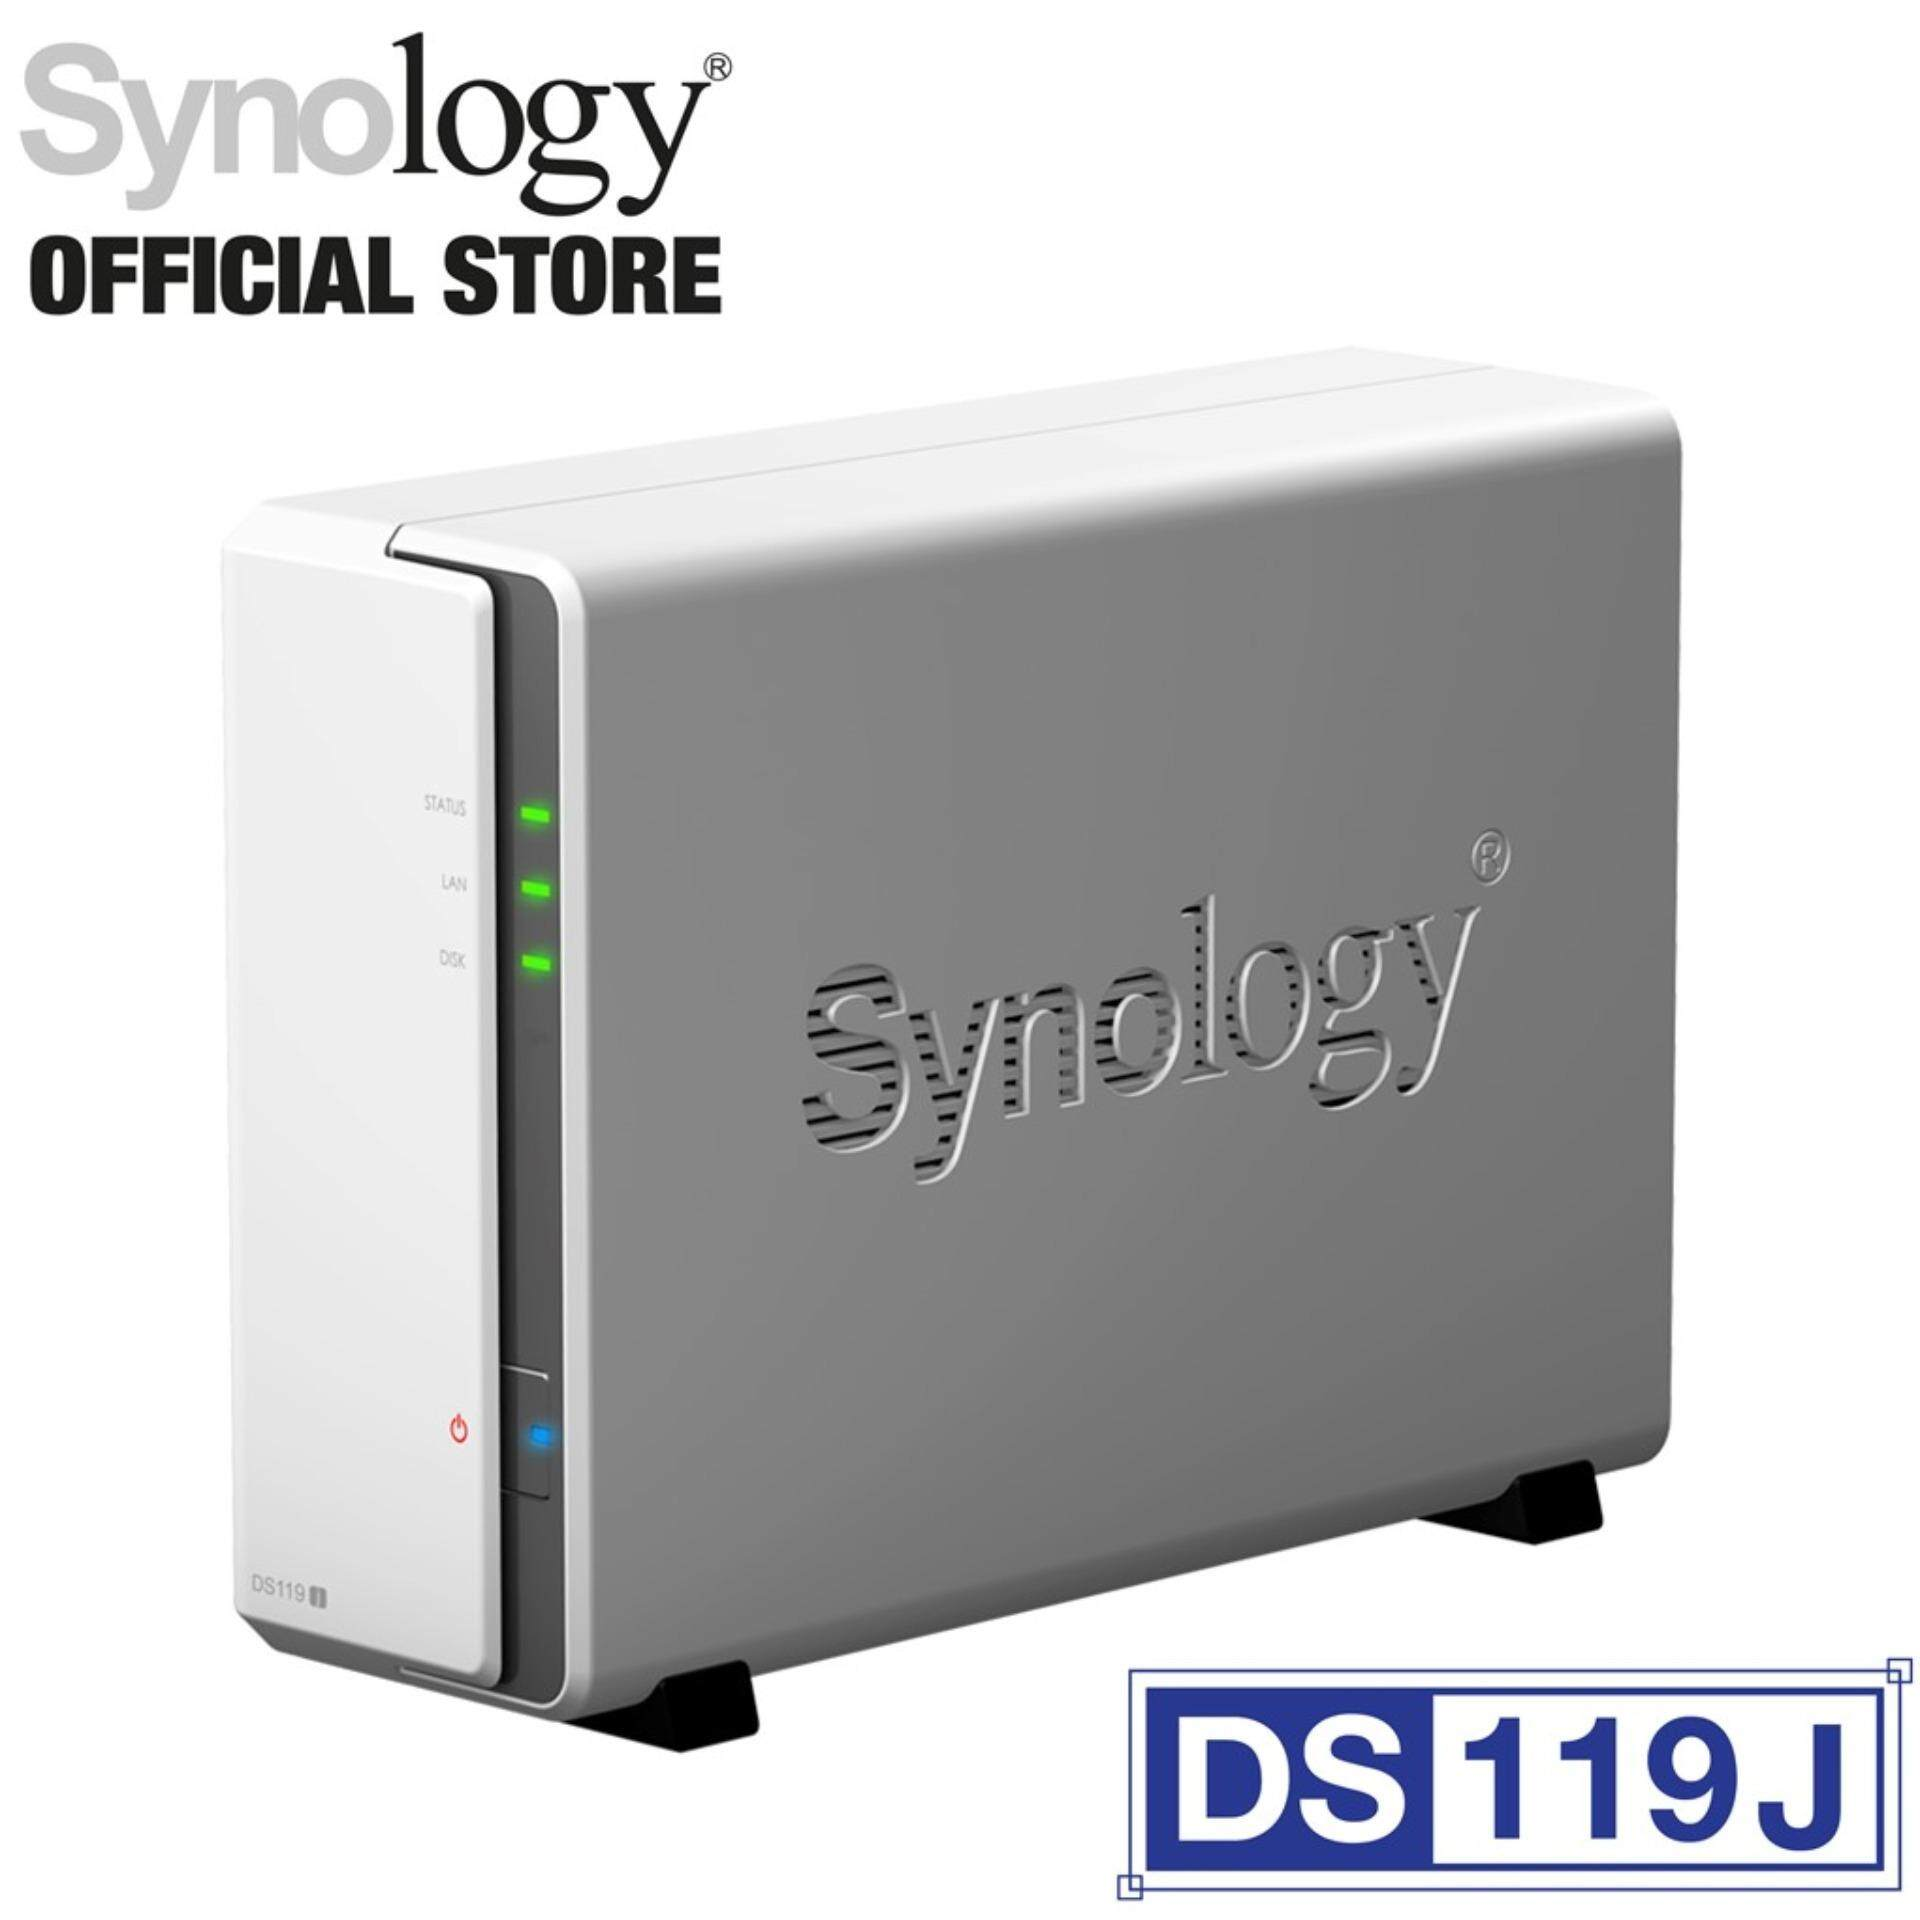 Synology Ds119j Nas Diskstation 1-Bay By Synology Official Store.